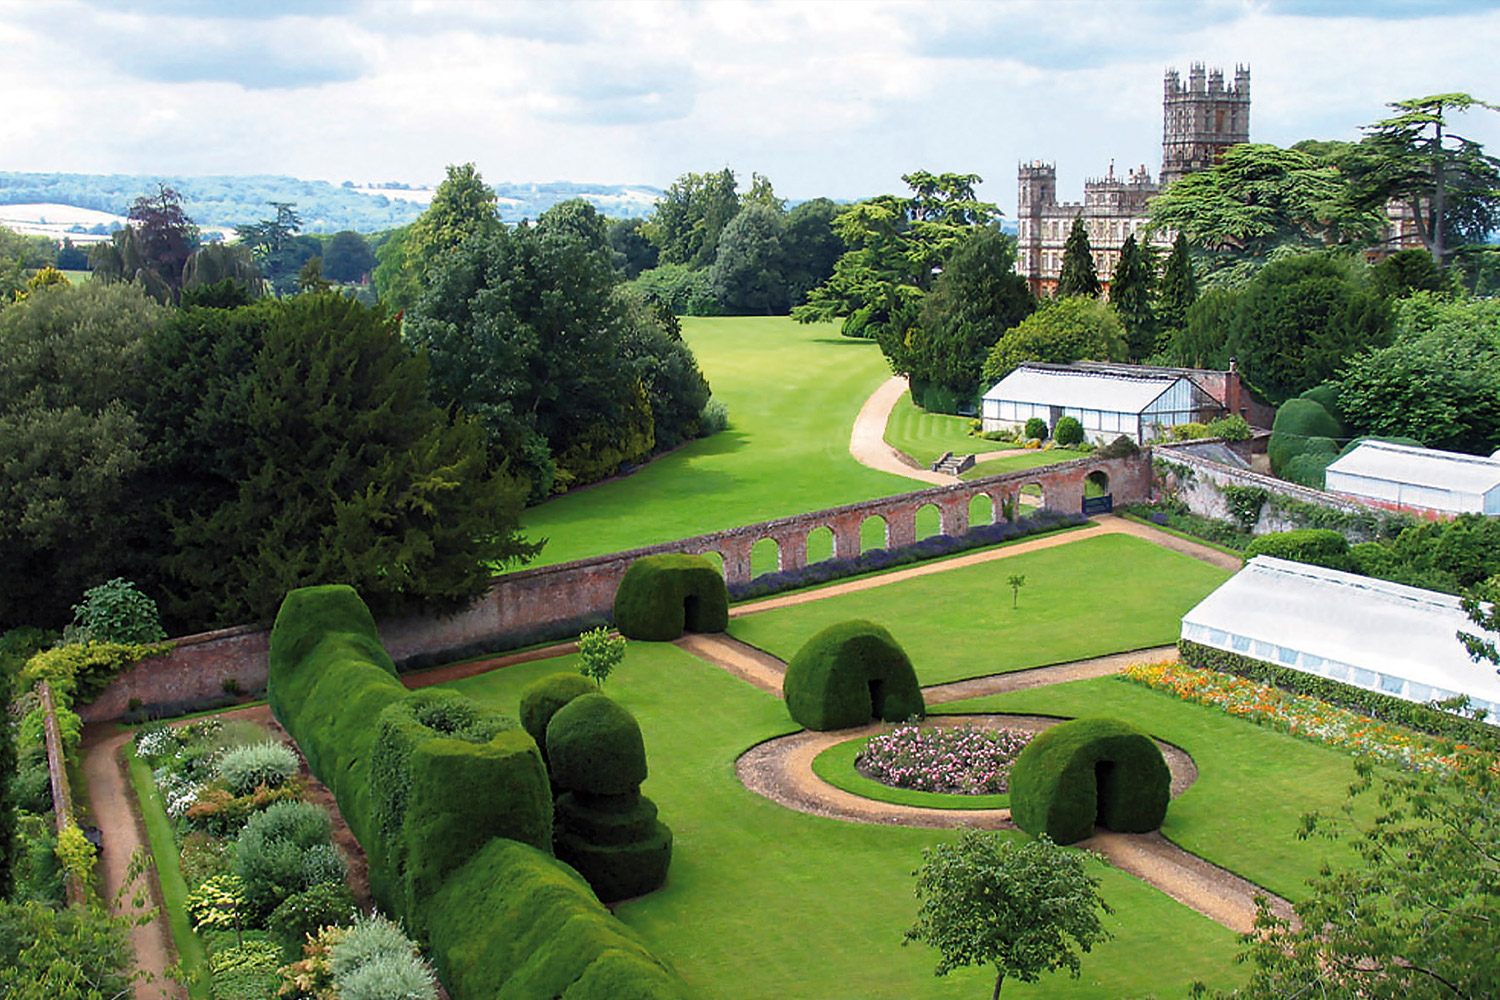 Monks Garden, Highclere Castle also known as Downton Abbey